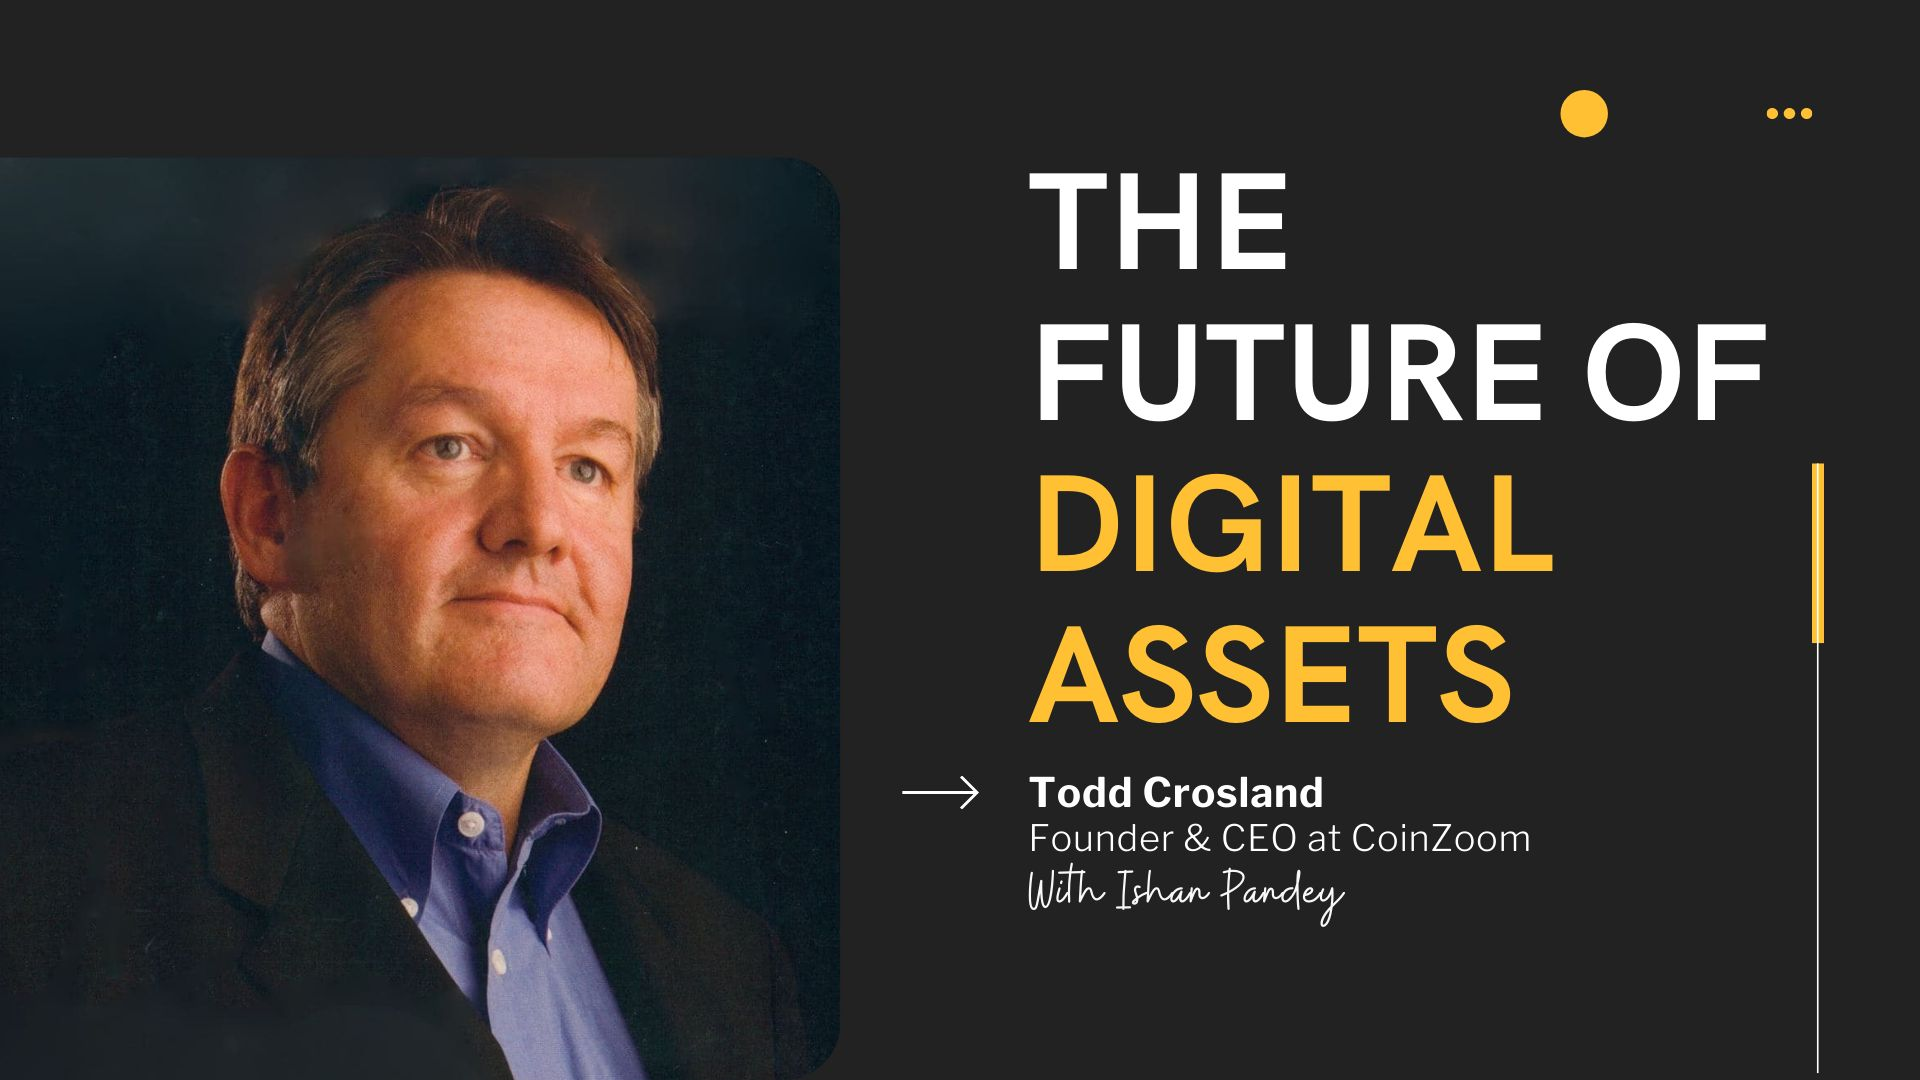 /the-future-of-digital-assets-with-todd-crosland-62h3zv3 feature image